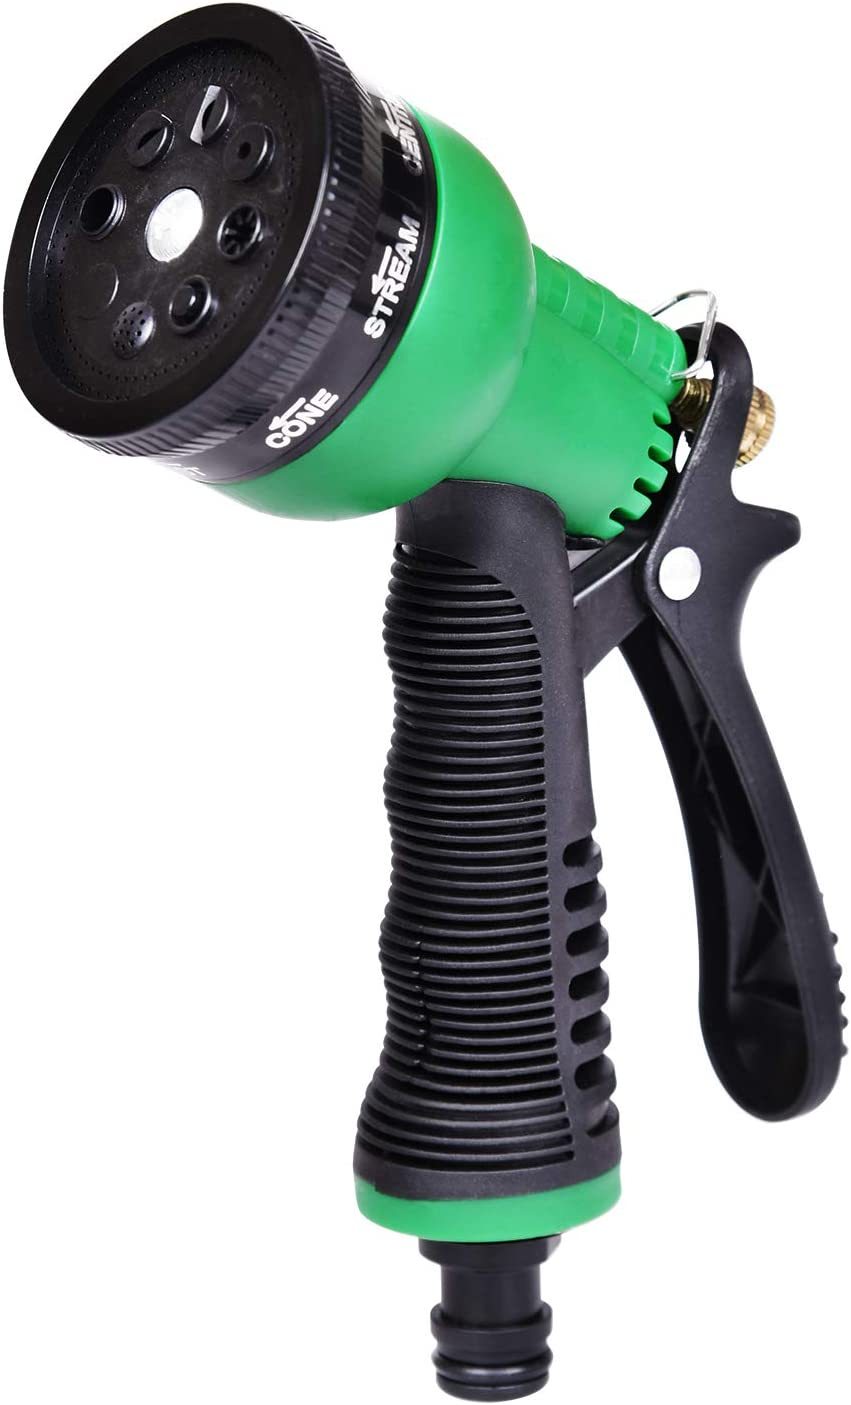 Hose Nozzle, Garden Hose Nozzle, High Pressure Hose Sprayer with 8-Adjustable Watering Patterns for Watering Plants, Washing Car, Bathing Pets and General Cleaning (Black and Green)